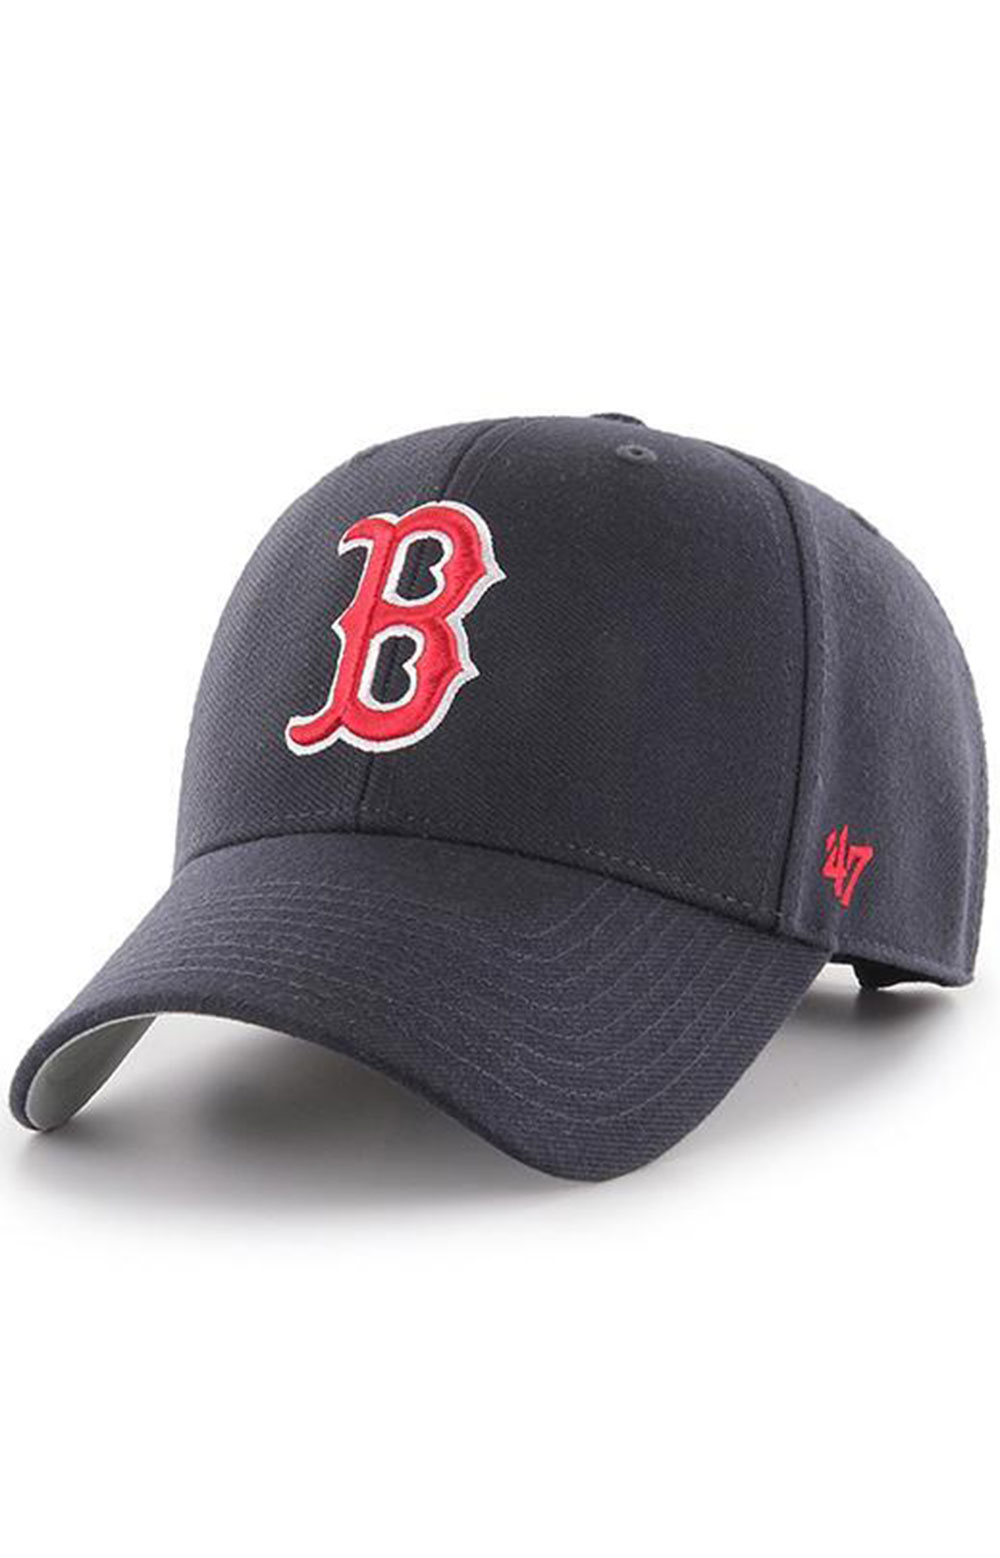 Boston Red Sox Home '47 MVP Hat